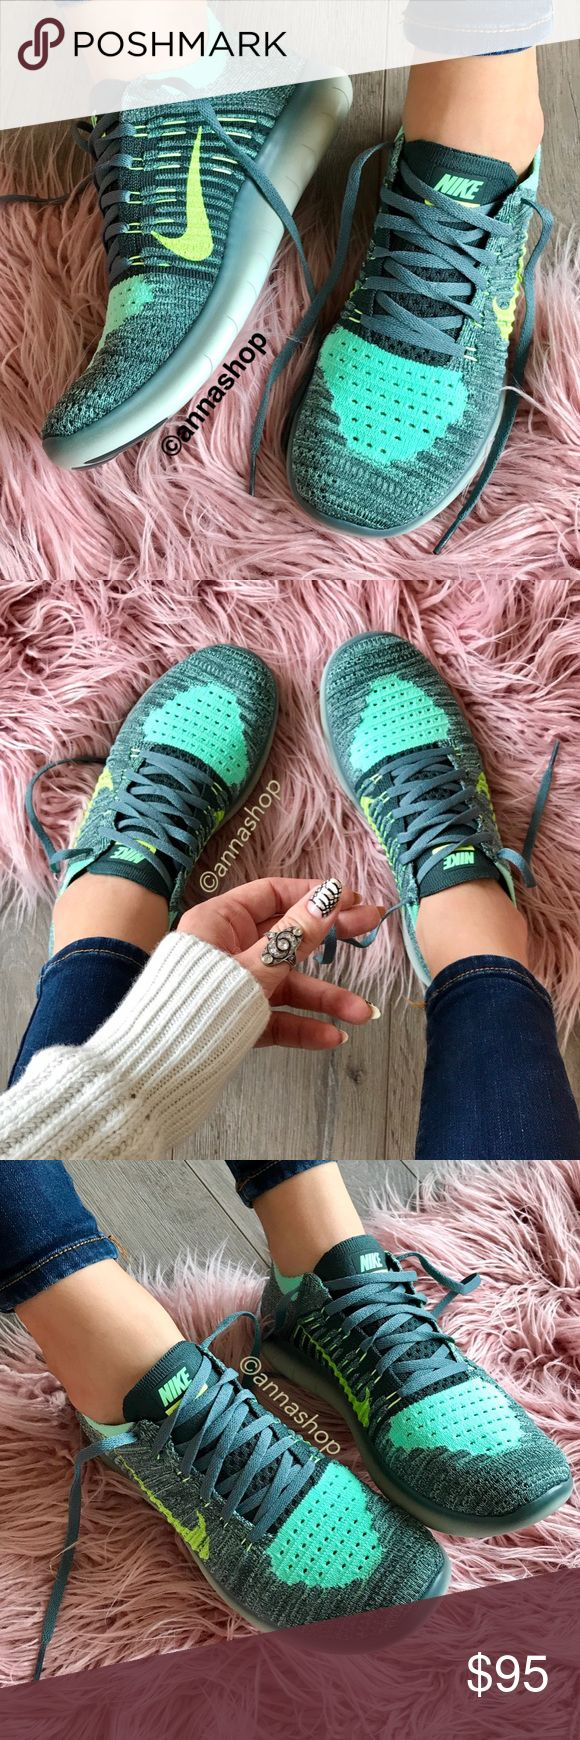 NWT Nike free rn Flyknit mint Brand new with box, no lid. Price is firm!!The next generation of the coveted Nike Free is here. Now with a newly designed Auxetic tri-star outsole pattern and sock-like Flyknit upper, the Women's Nike Free RN Flyknit Running